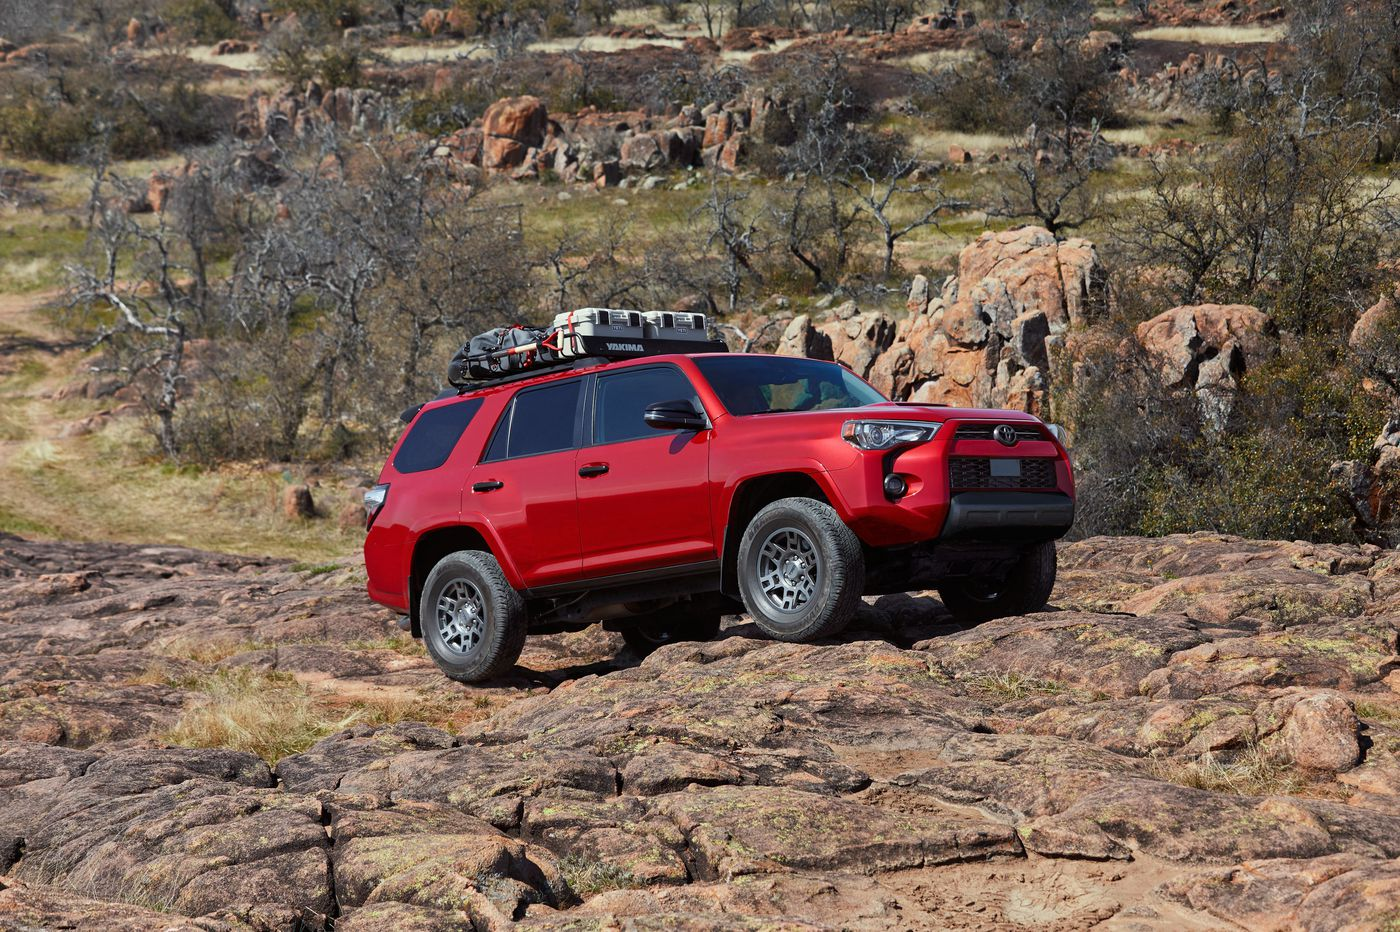 SUV test, part 2: 4Runner takes us on a rugged trip back in time